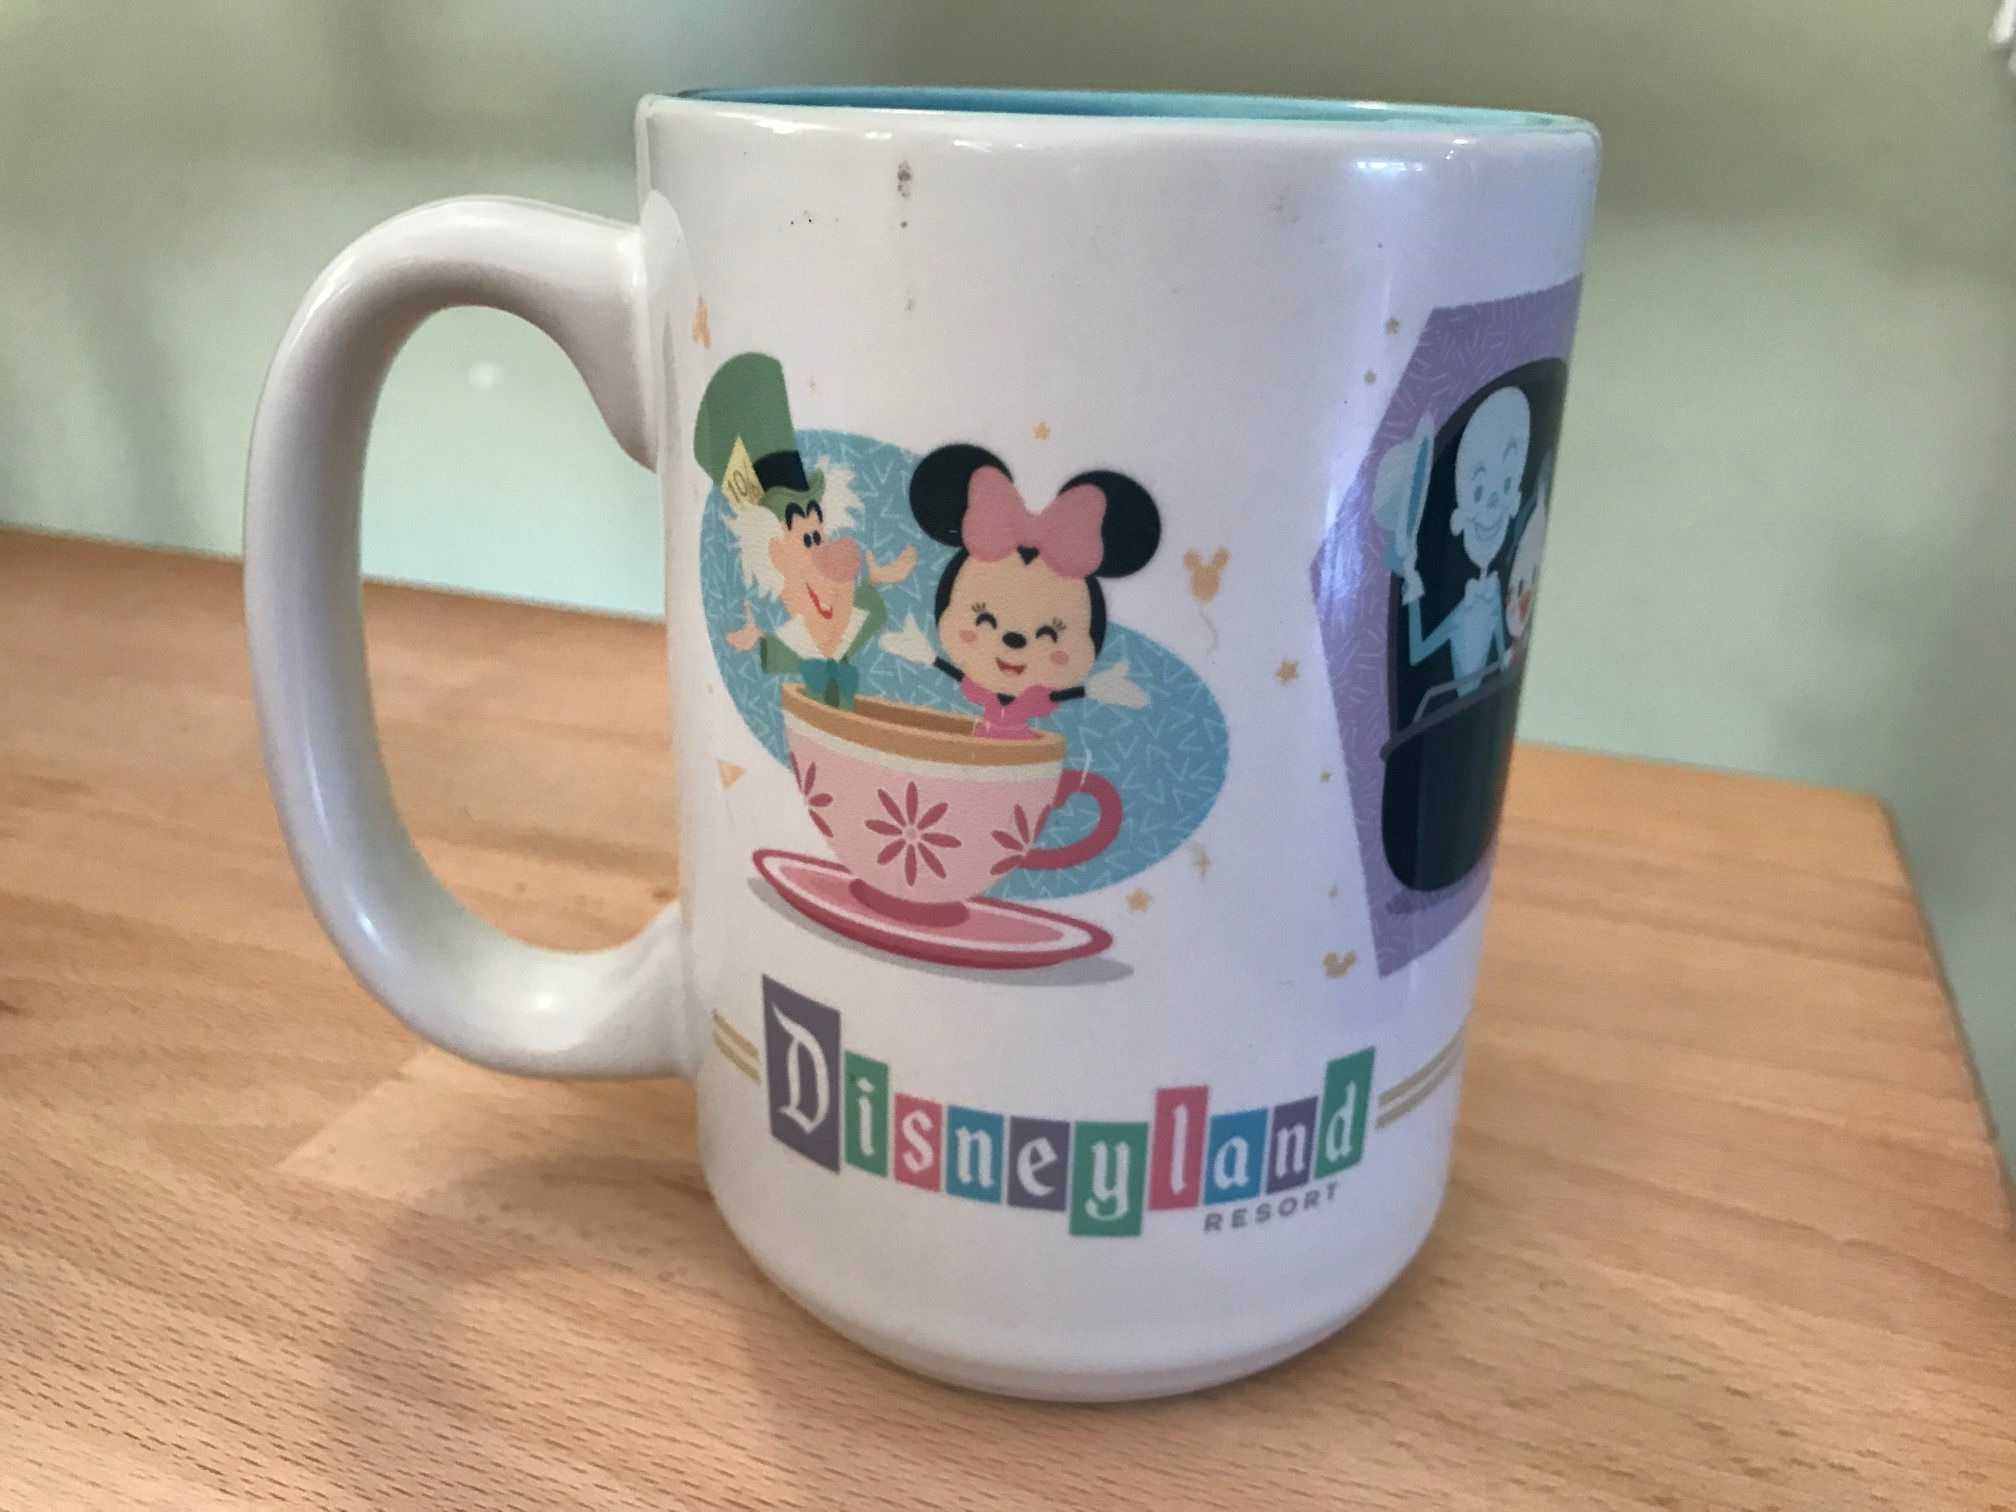 Authentic Original Disney Parks Mug Made In Thailand Tamara Rubin Lead Safe Mama 3